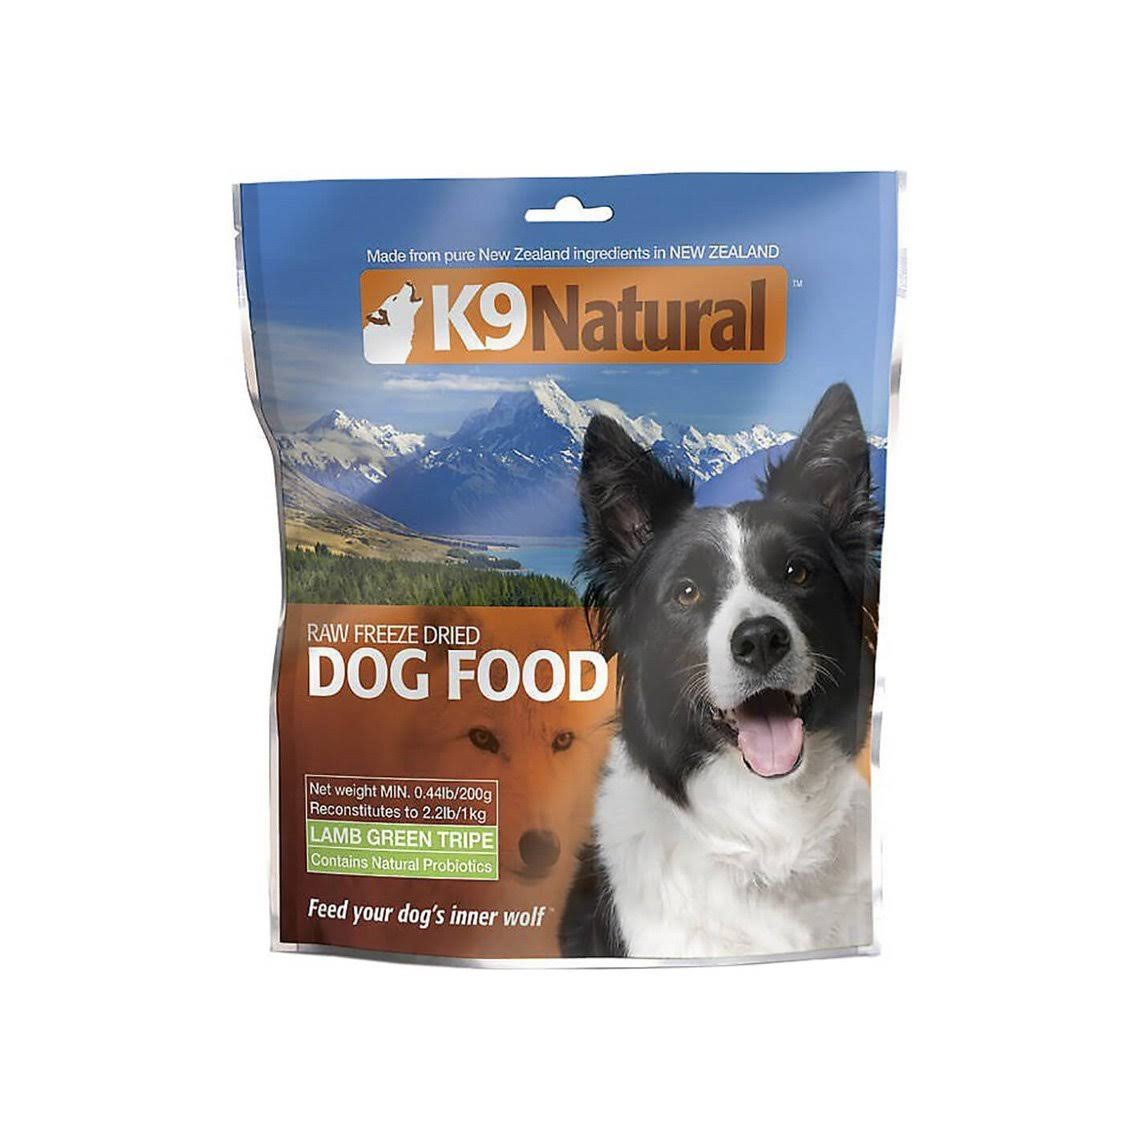 K9 Raw Freeze Dried Natural Dog Food - Lamb Green Tripe, 0.44lb